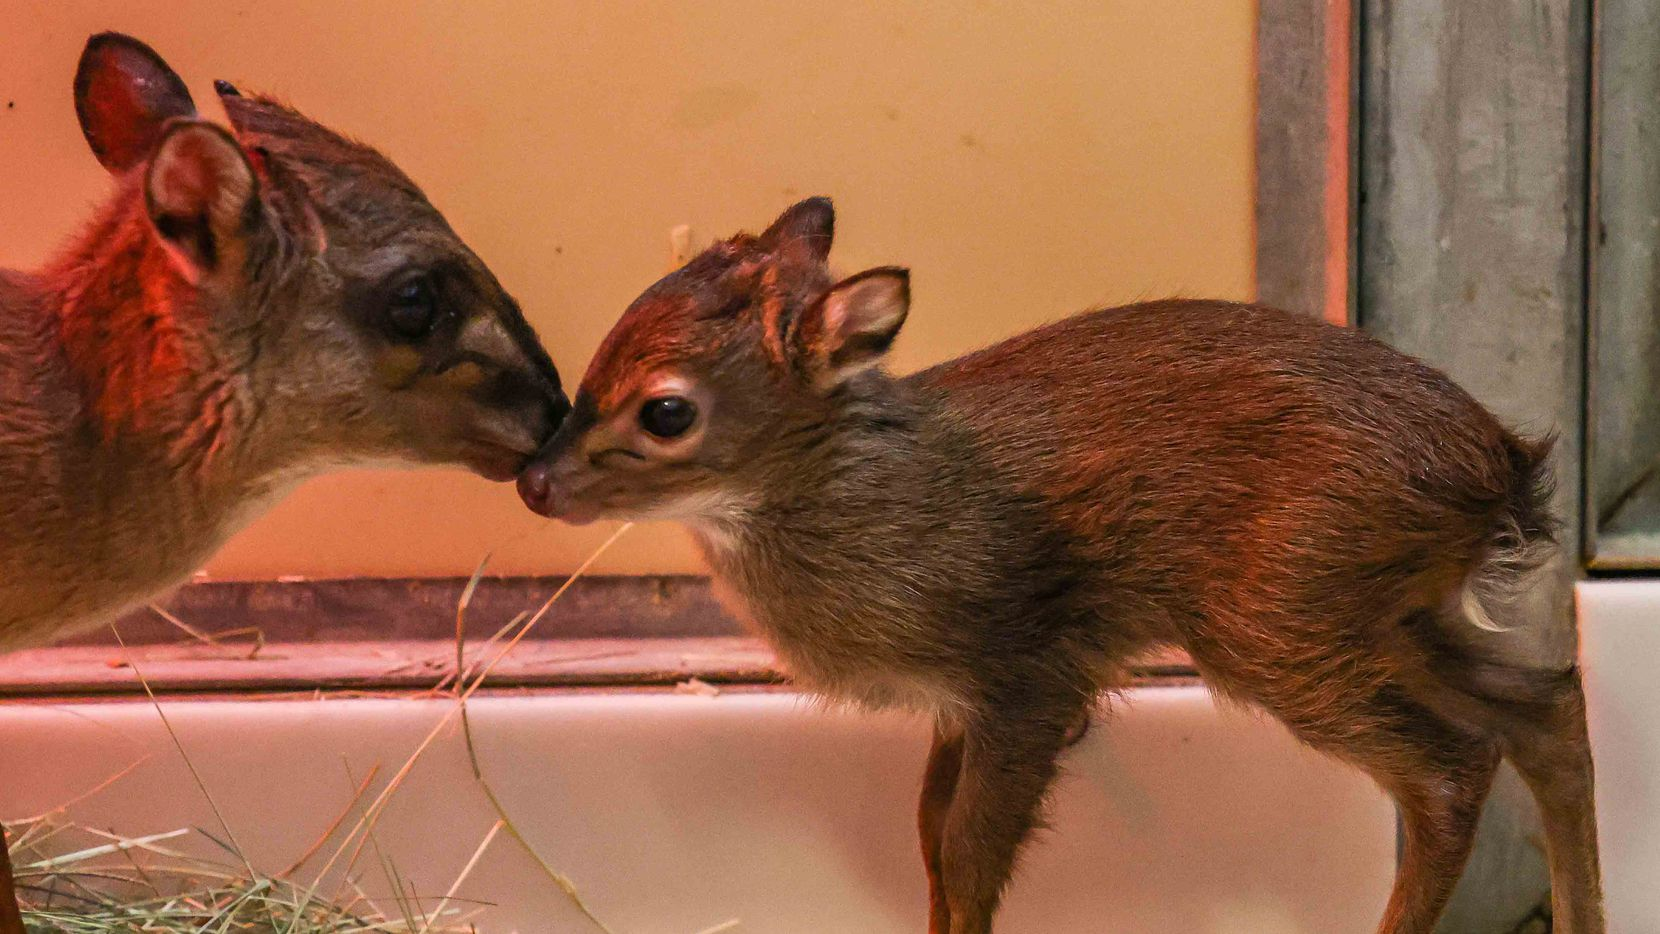 Cupcake, a blue duiker, one of the smallest species of antelope in the world, checks on her newborn at the Dallas Zoo on Friday, June 11, 2021. The Dallas Zoo is involved in an effort to bolster their species, as there's only about 50 antelopes of their kind living at zoos in the US.